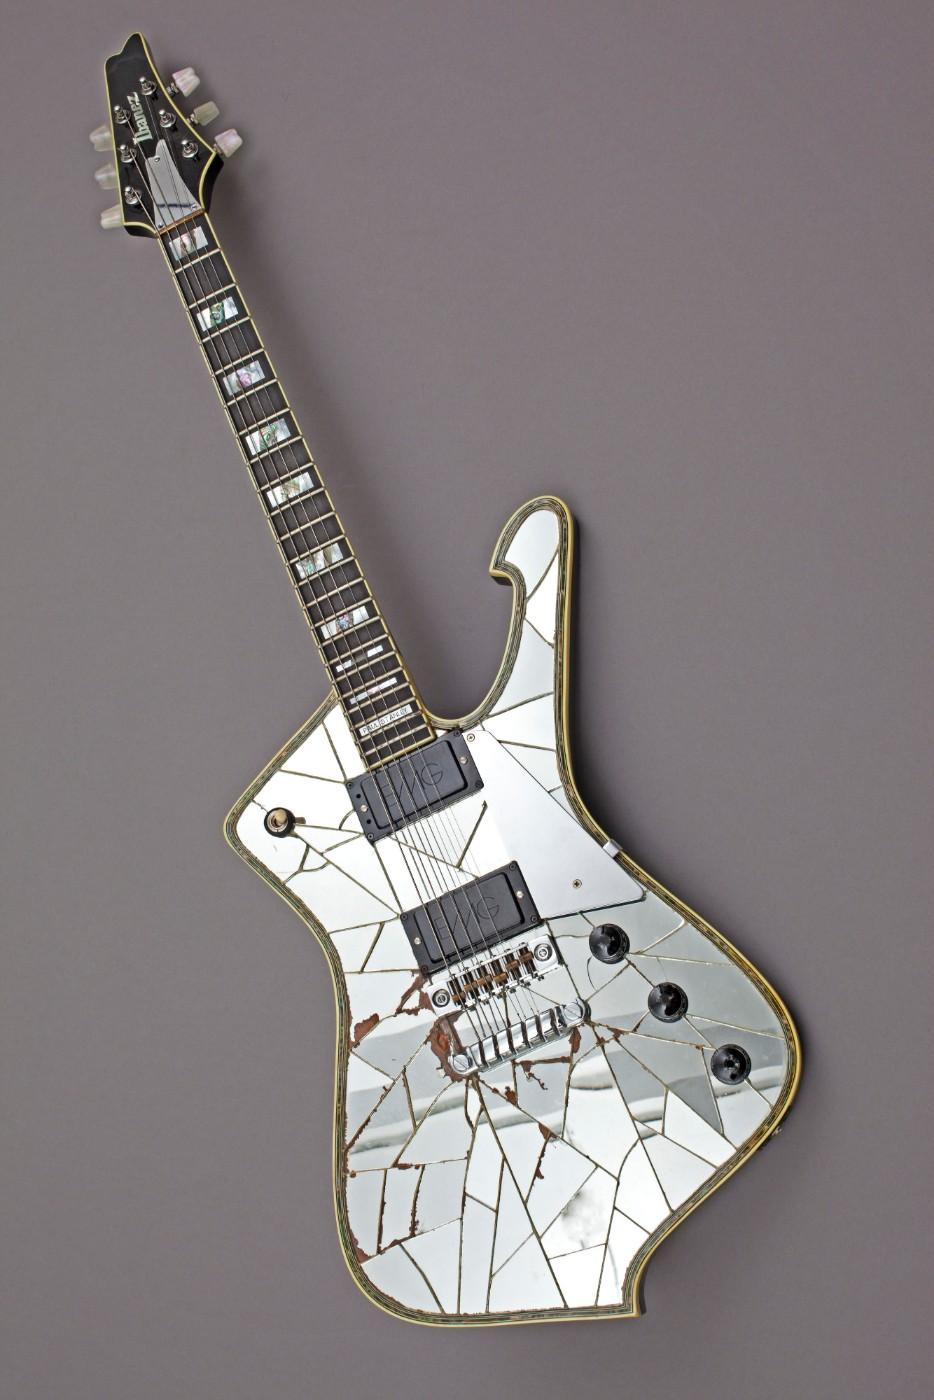 Paul Stanley of KISS collaborated with Jeff Hasselberger of Ibanez to create this guitar. Stanley used in live performances with KISS in 1979-80 and again in 1996-97.